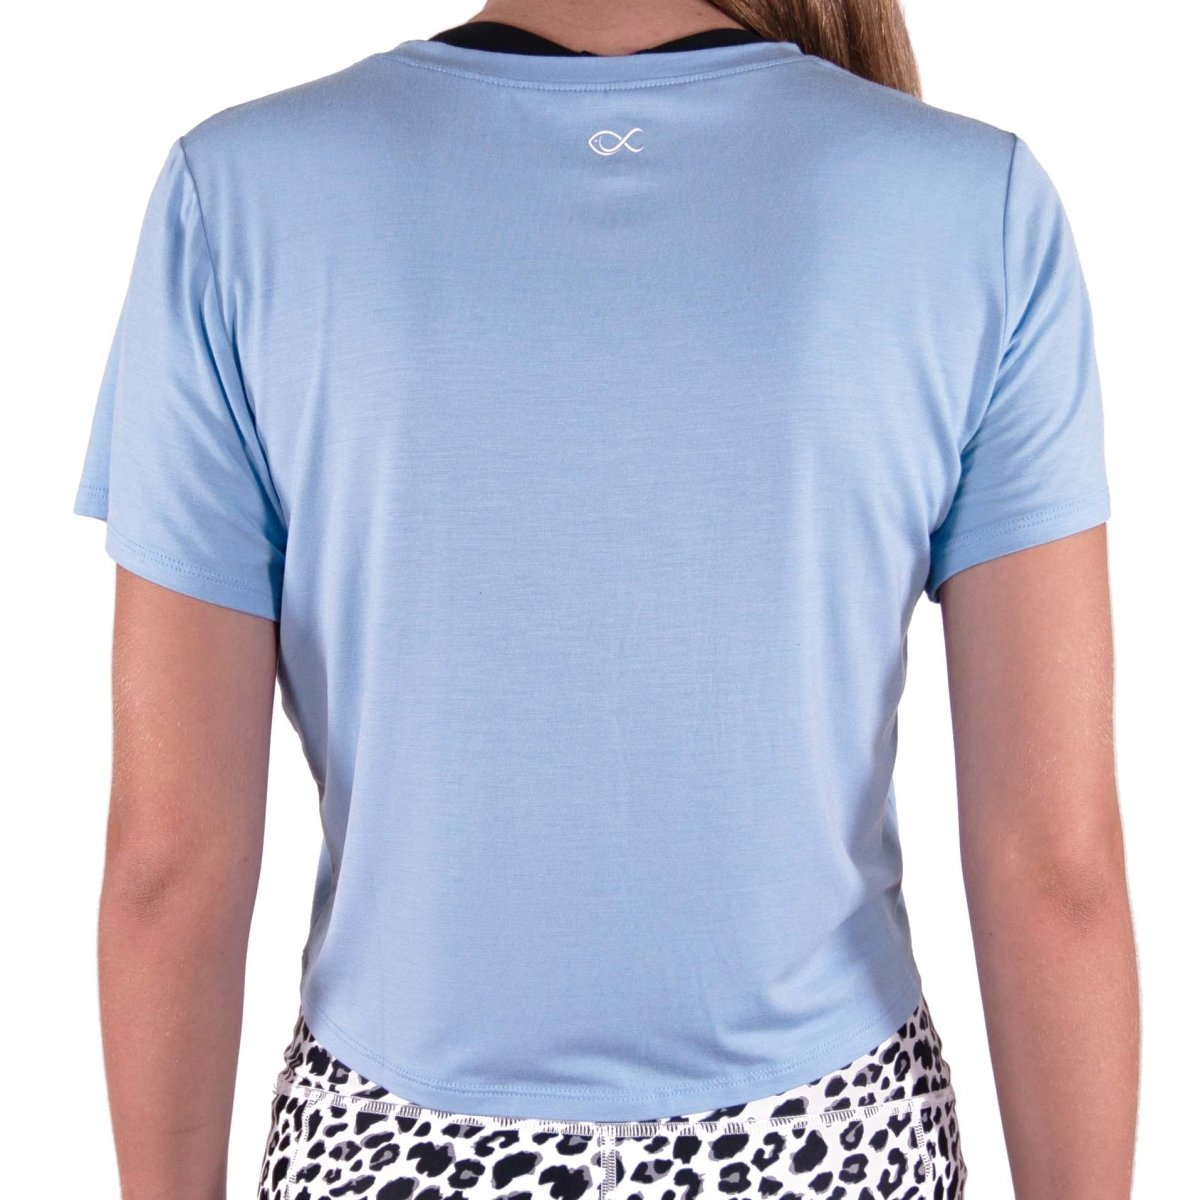 Luv Crop in Blue Bell - Southern Athletica